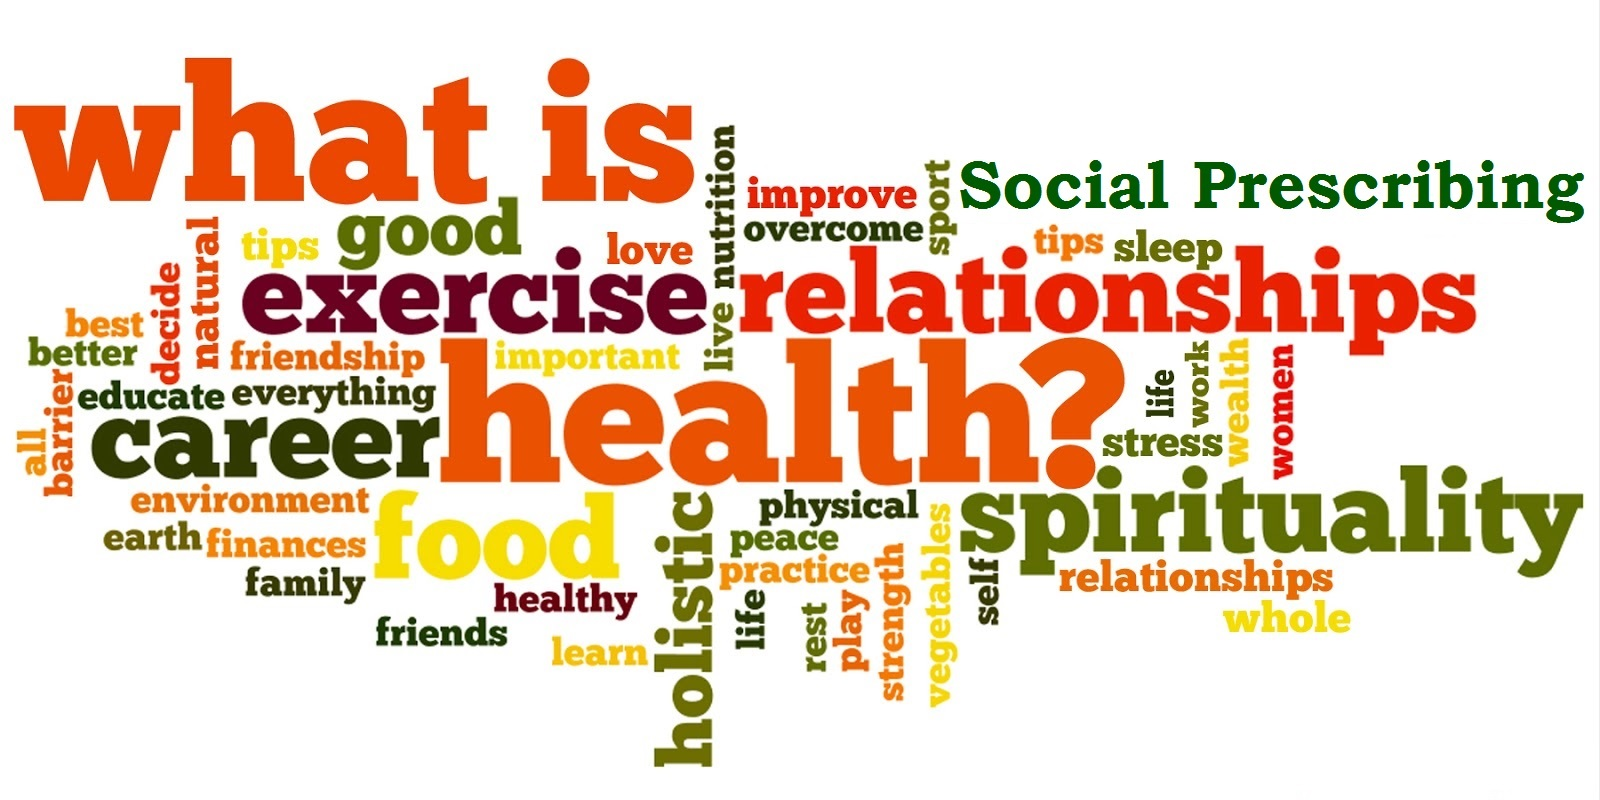 improving education healthy lifestyle malaysia health and social care essay Health education extends the inspiration and motivation towards the first crucial aspects of life sustenance, maintenance and improve the productivity and standard of living of people around the globe.